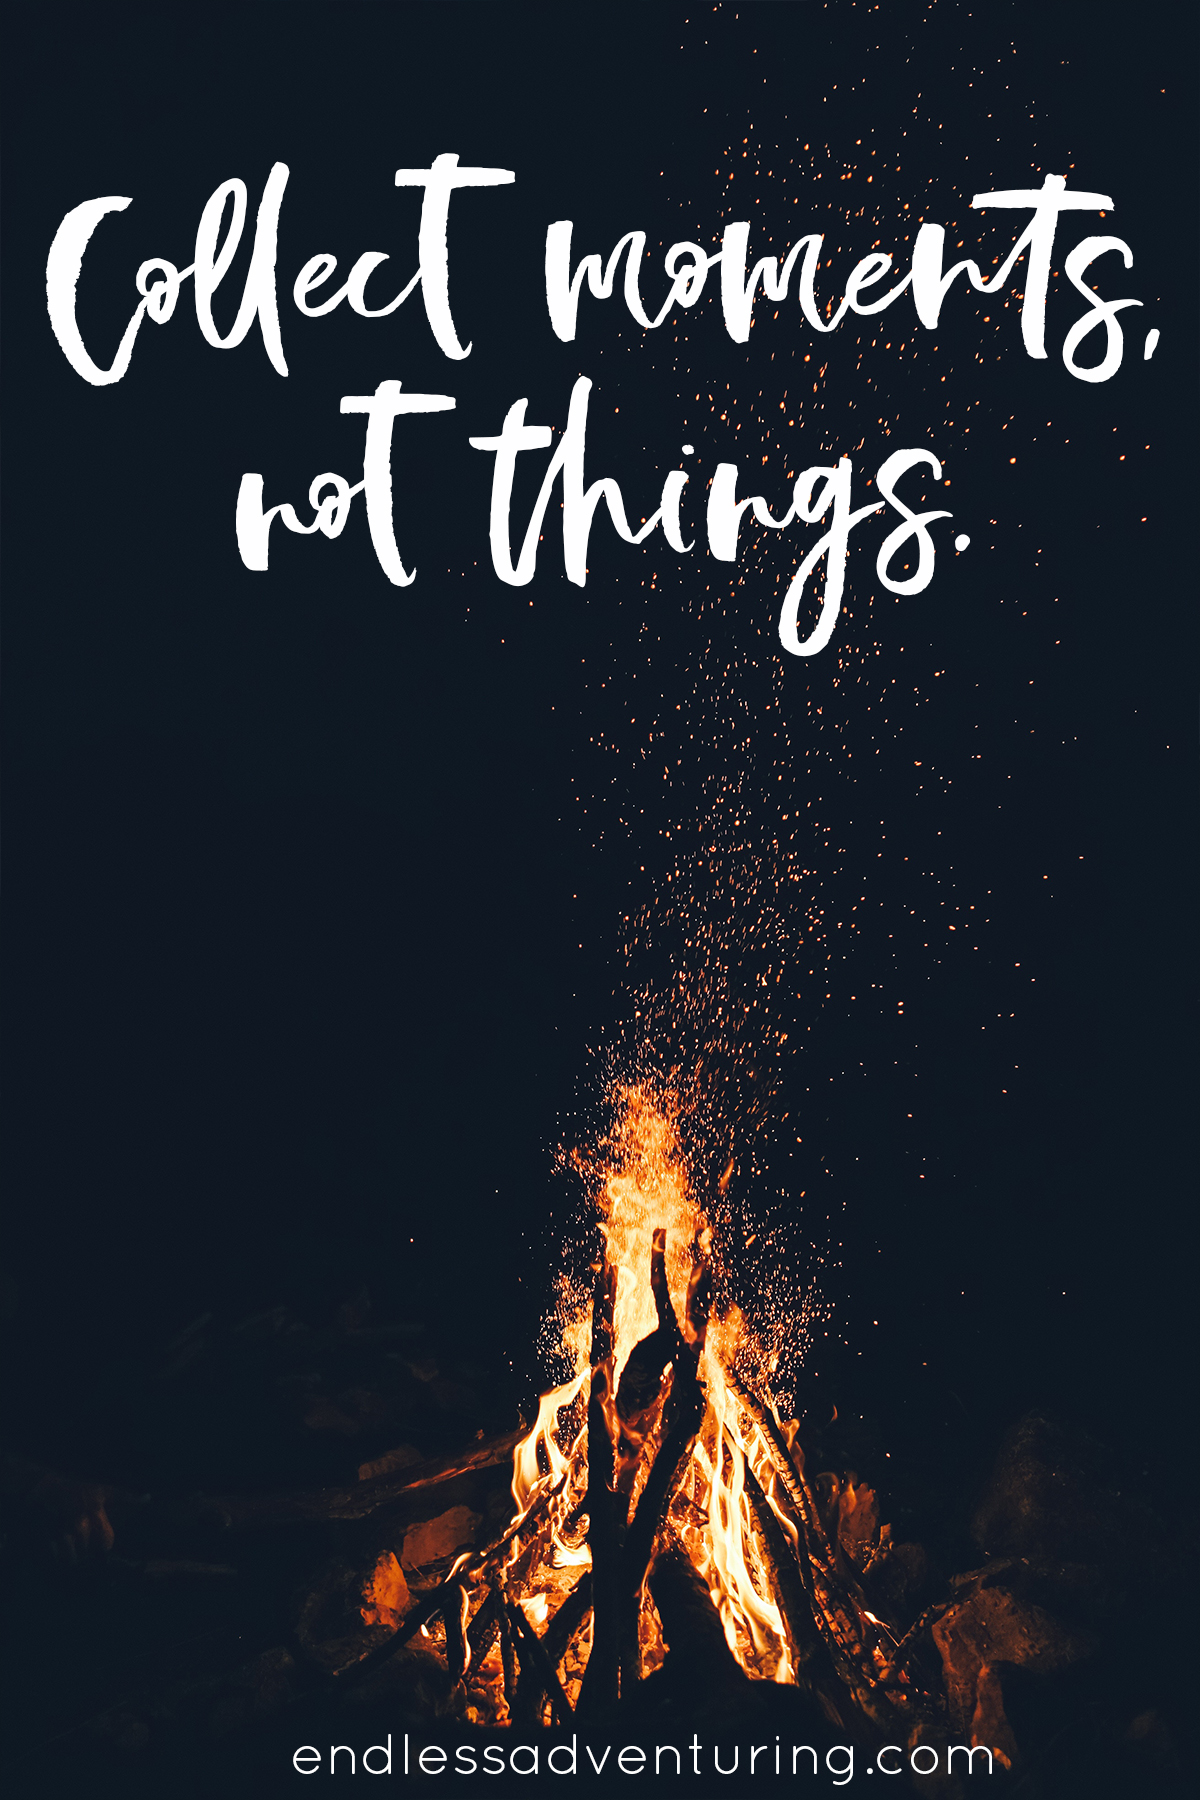 Travel Quote - Collect Moments, Not Things